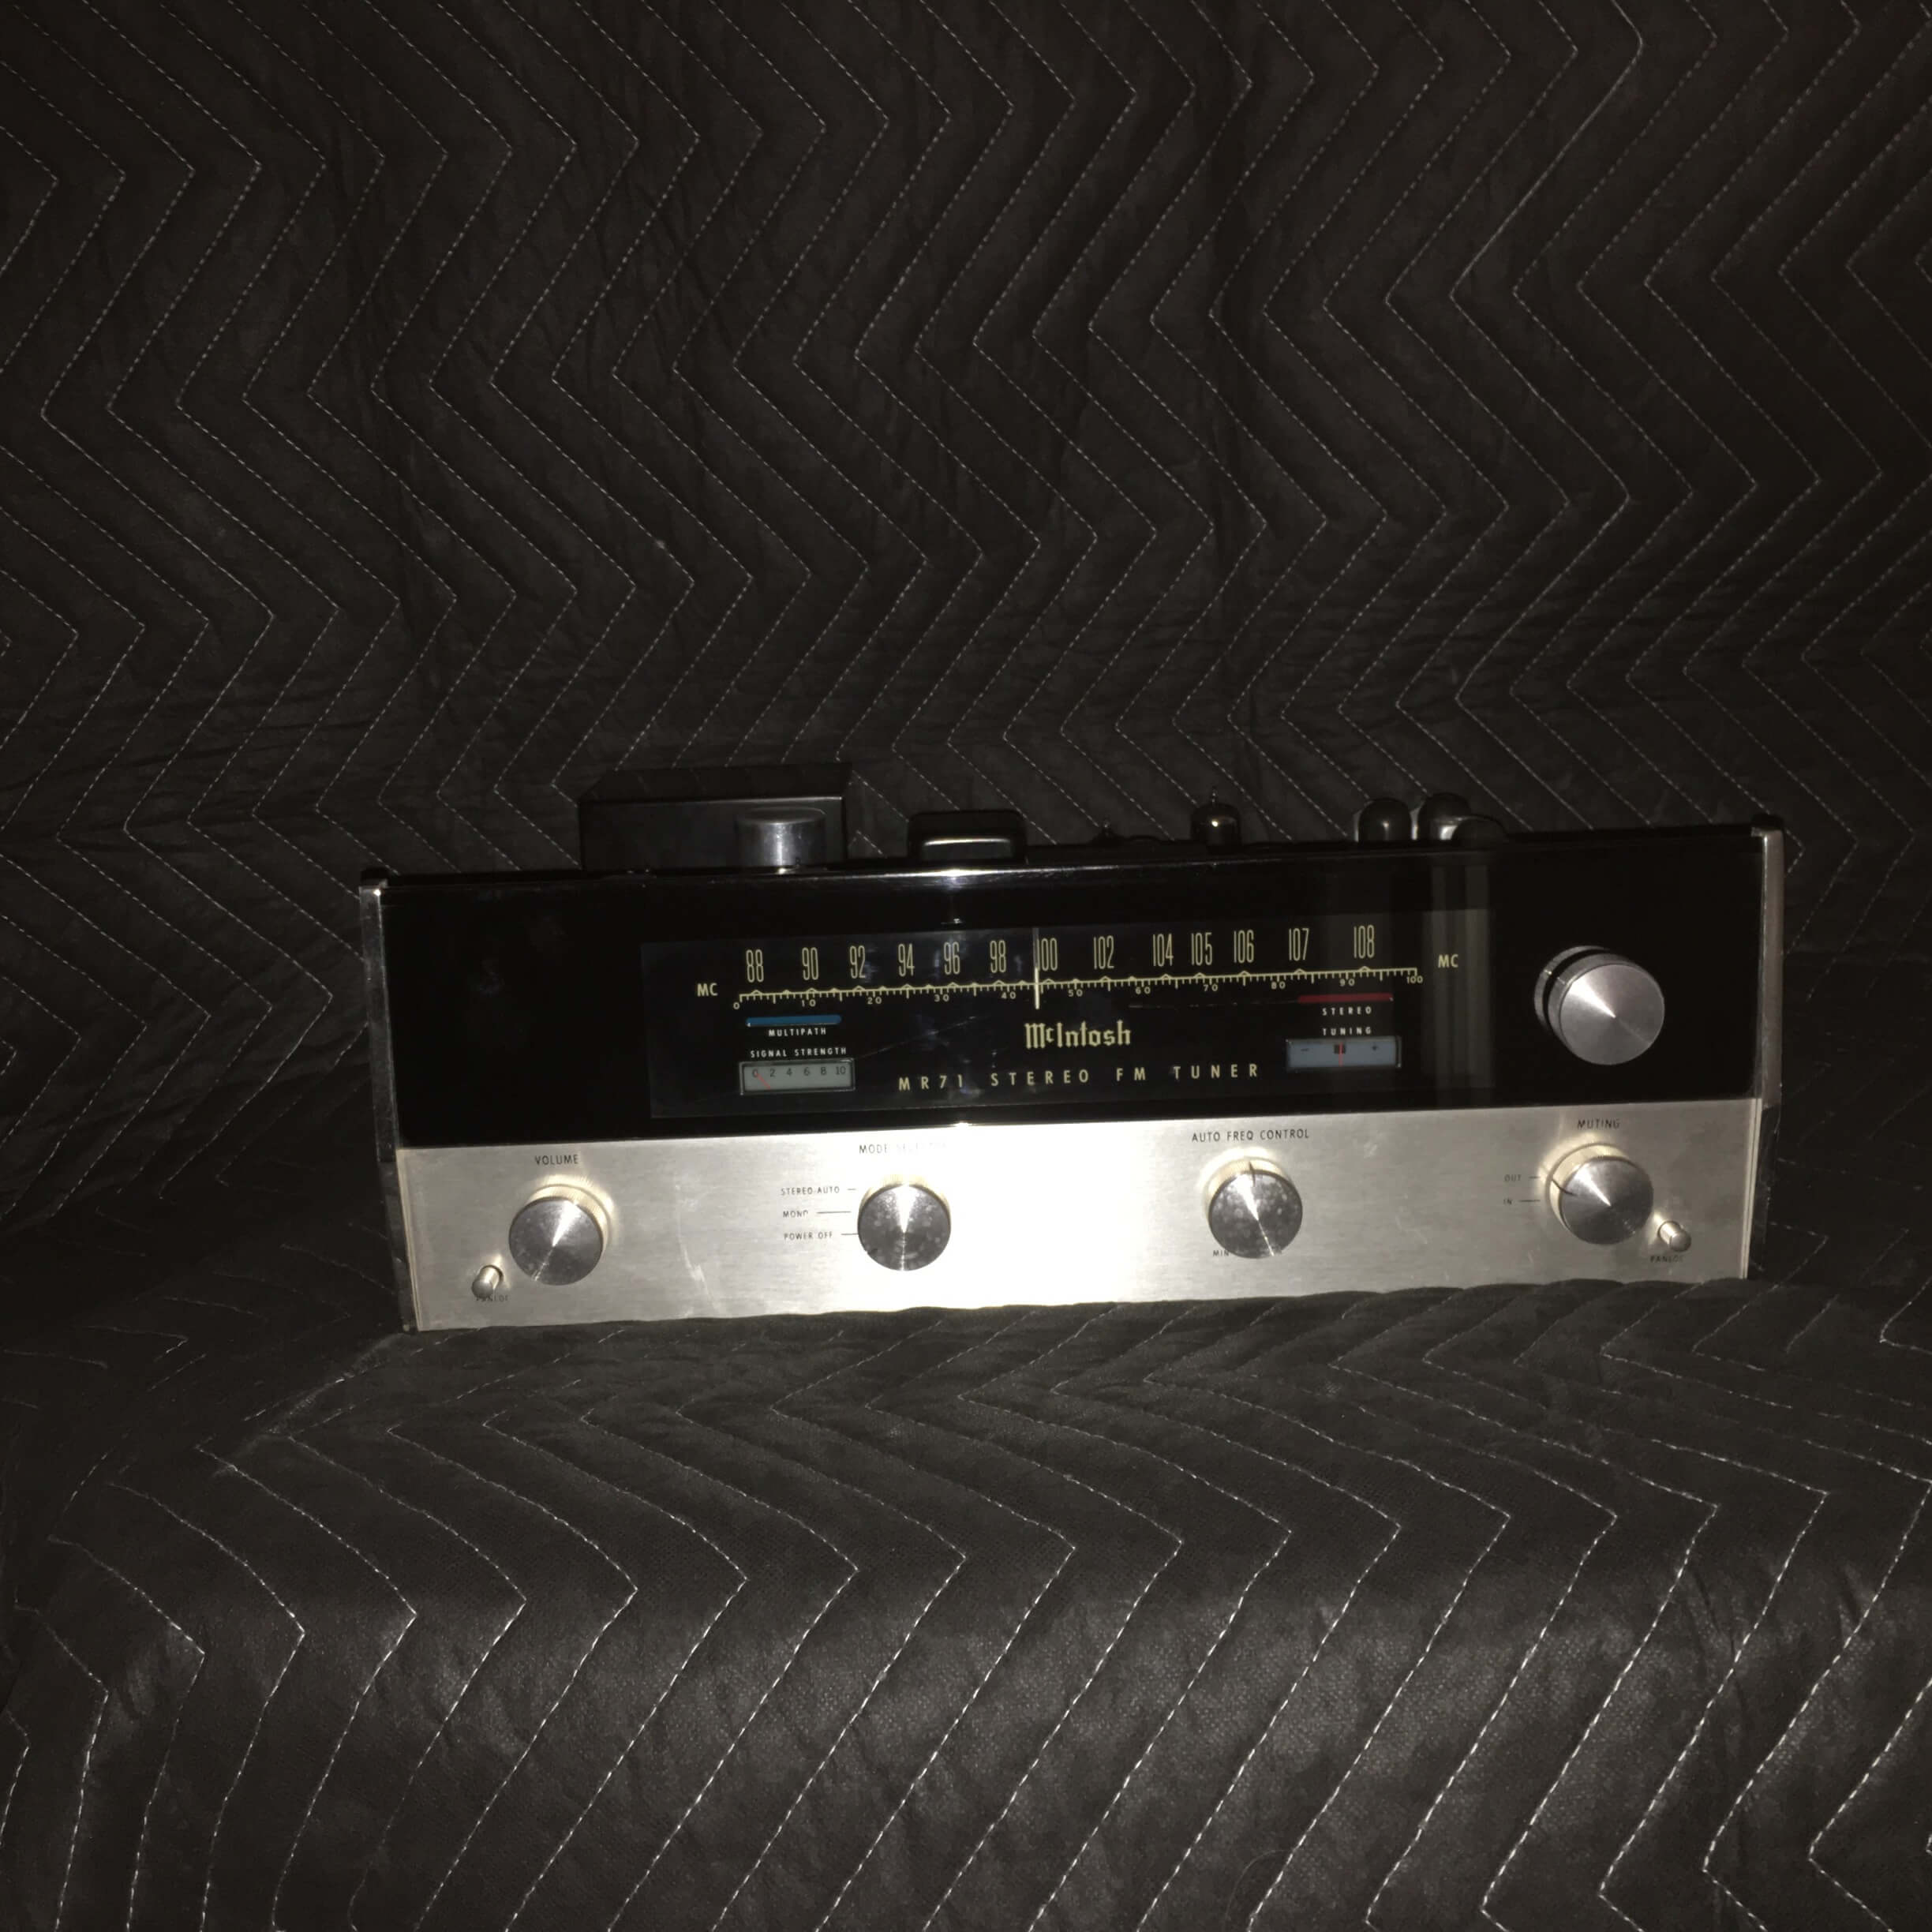 McIntosh MR 71 FM tuner with cabinet